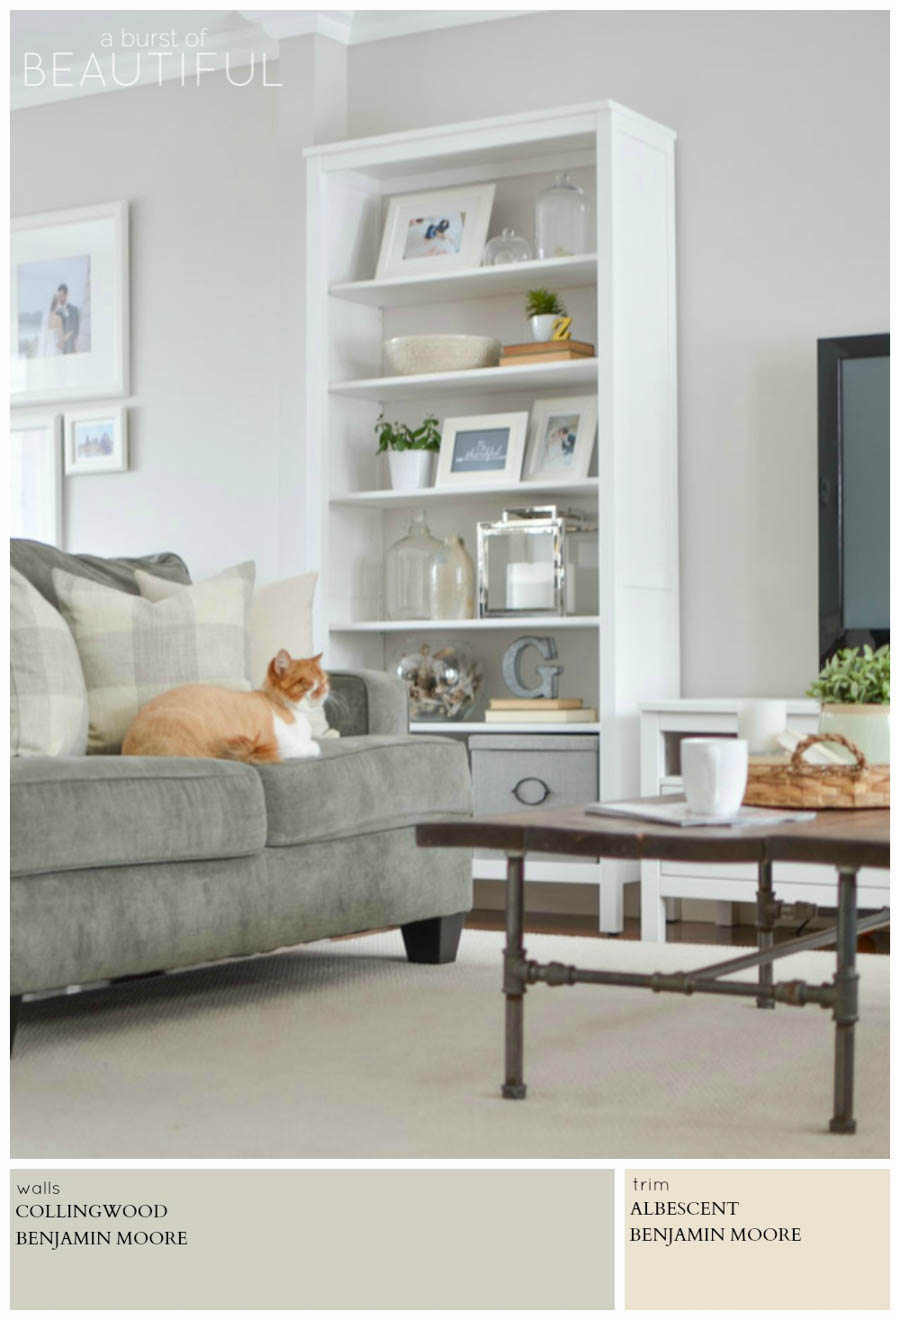 Collingwood By Benjamin Moore Is A Classic And Versatile Color For Any  Space. A Burst